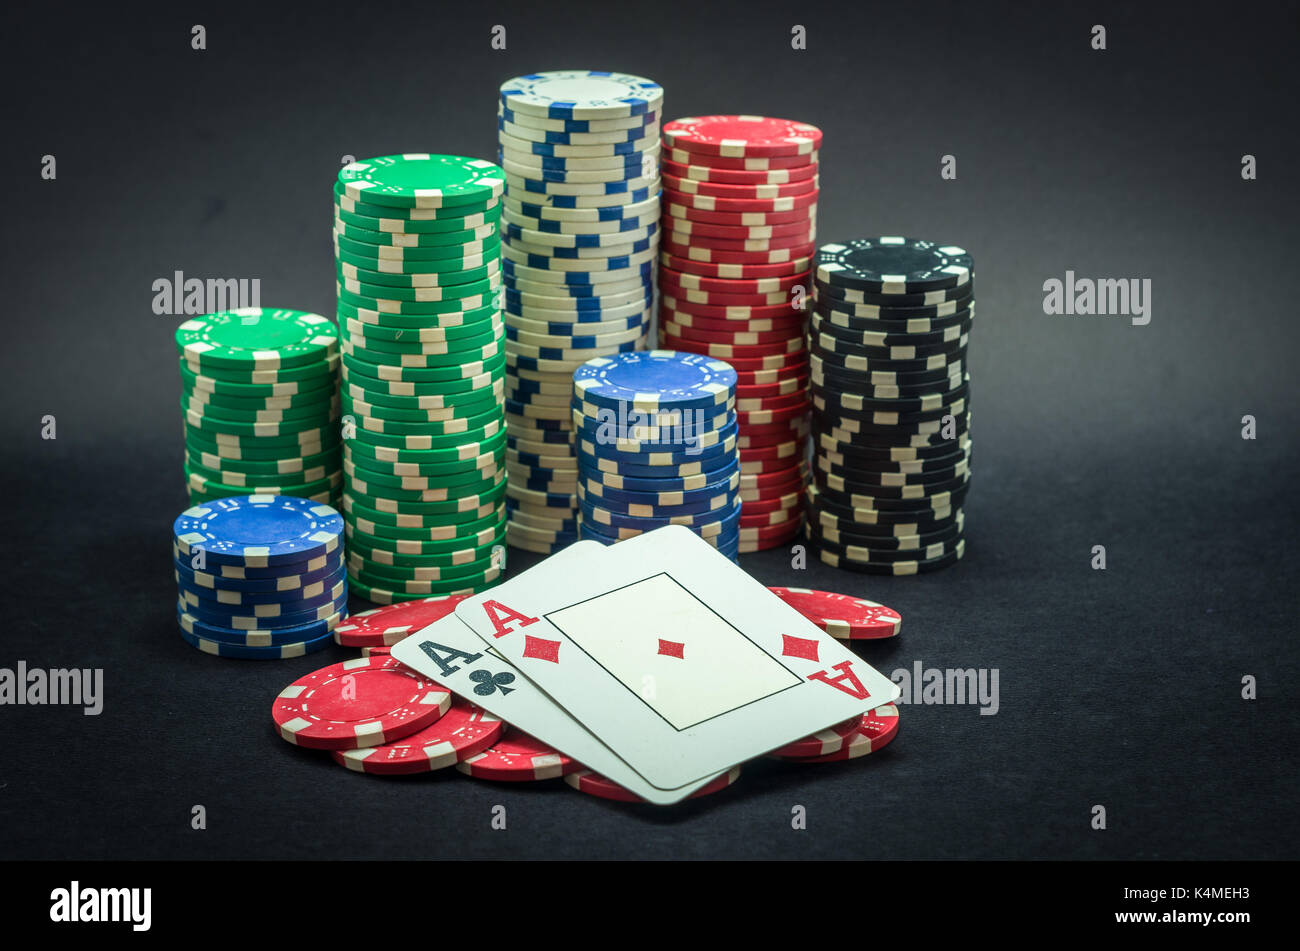 Pair Of Ace Winner Poker Chips Stacked And Pair Of Aces Black Stock Photo Alamy